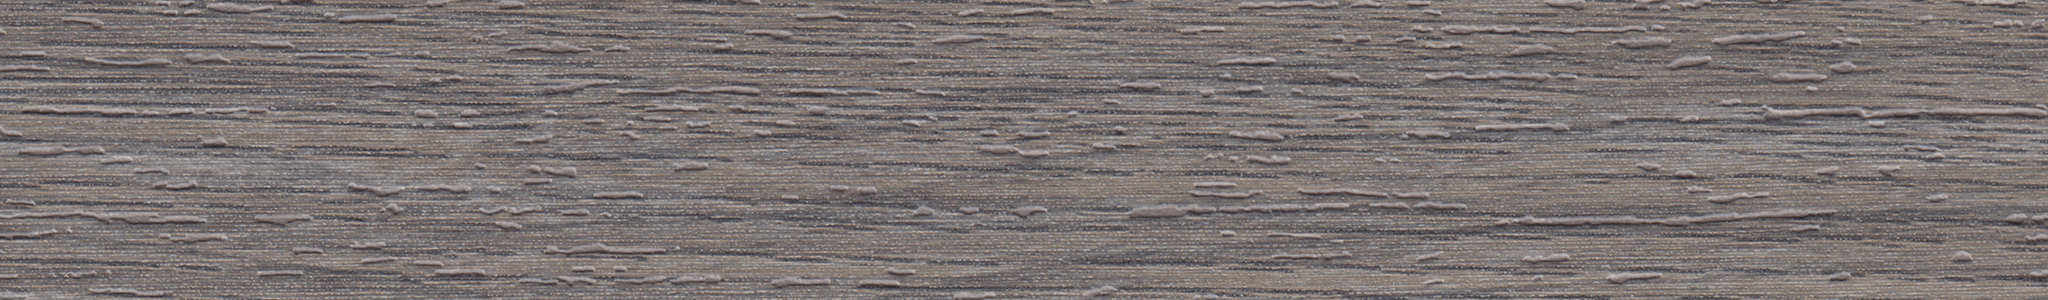 HD 25364 ABS Edge Stone Elm Pore